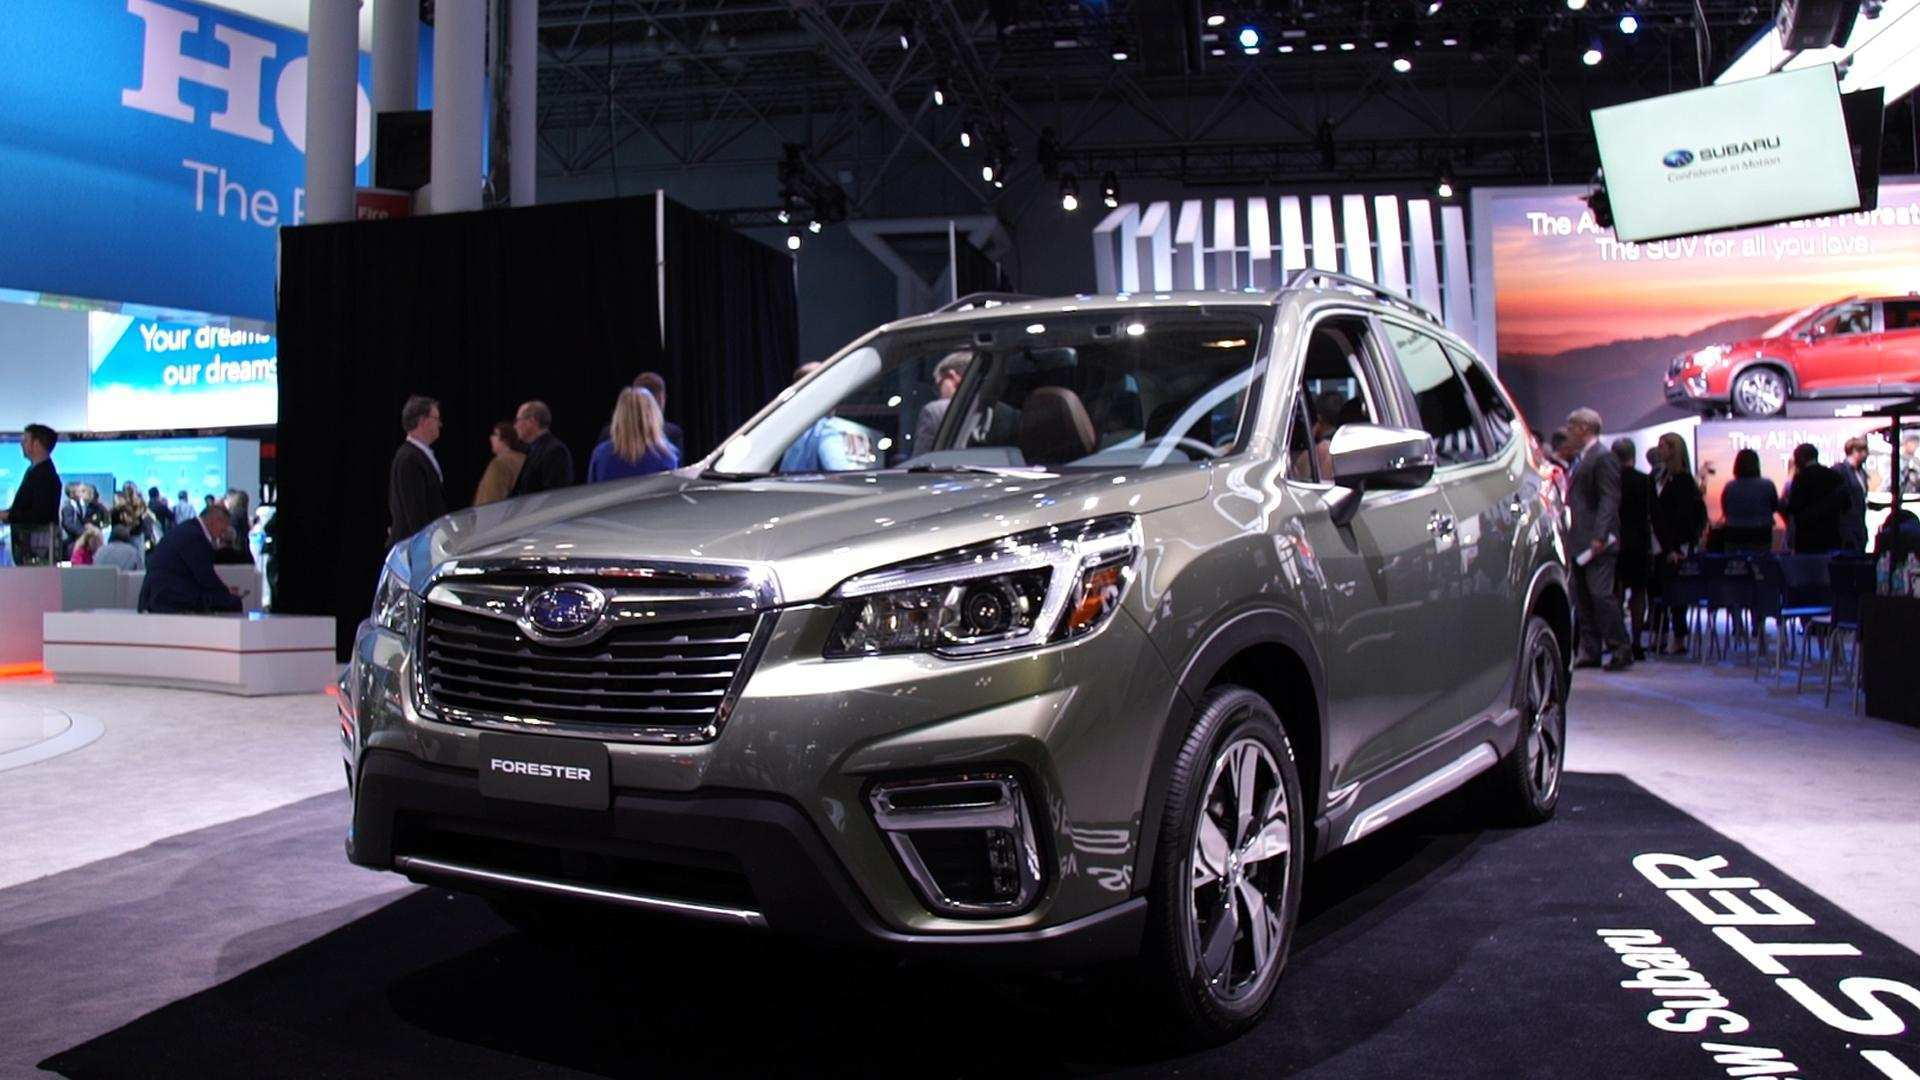 33 Concept of Subaru Forester 2019 Gas Mileage Exterior by Subaru Forester 2019 Gas Mileage